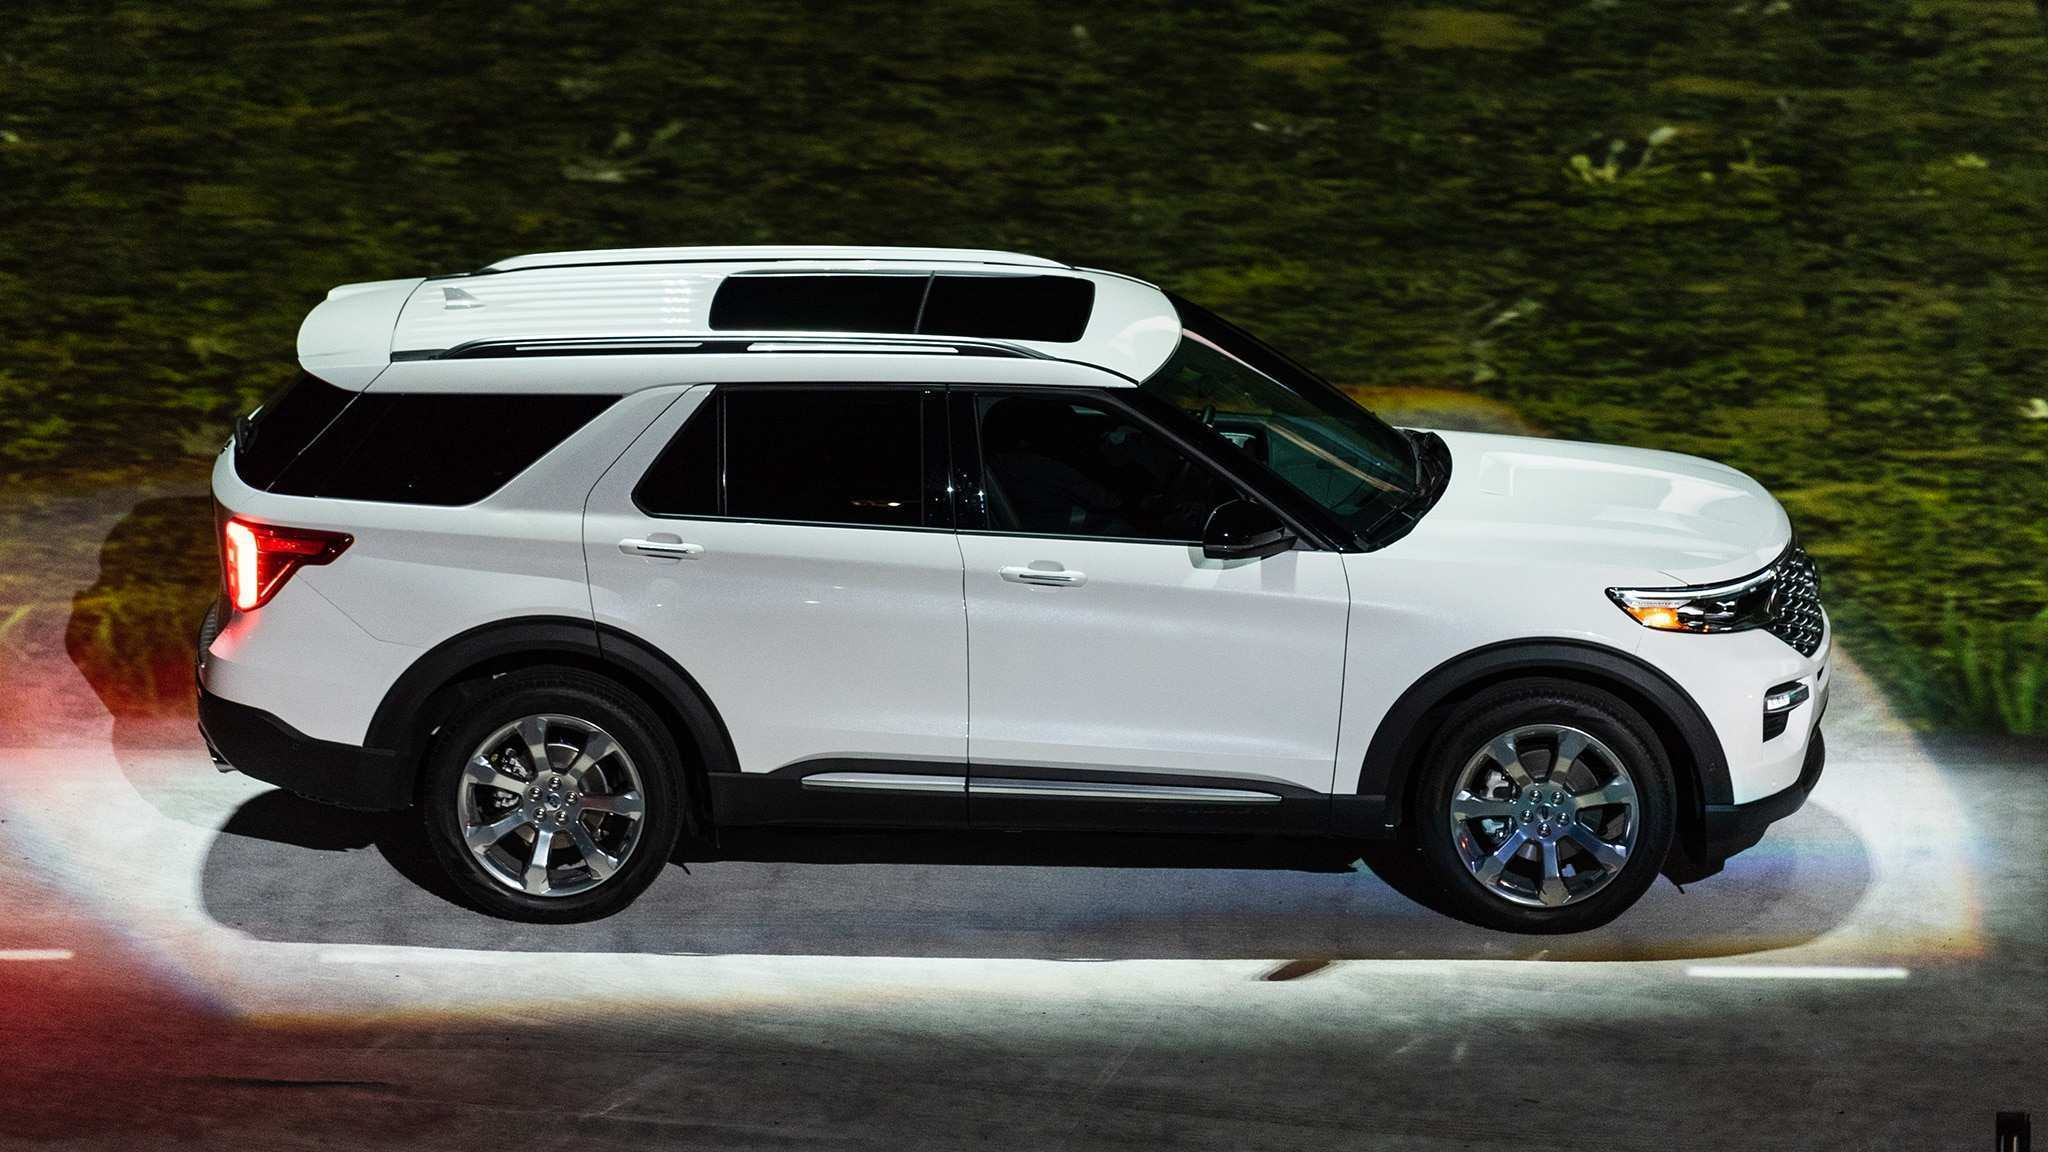 50 All New 2020 Ford Explorer Xlt Specs Style